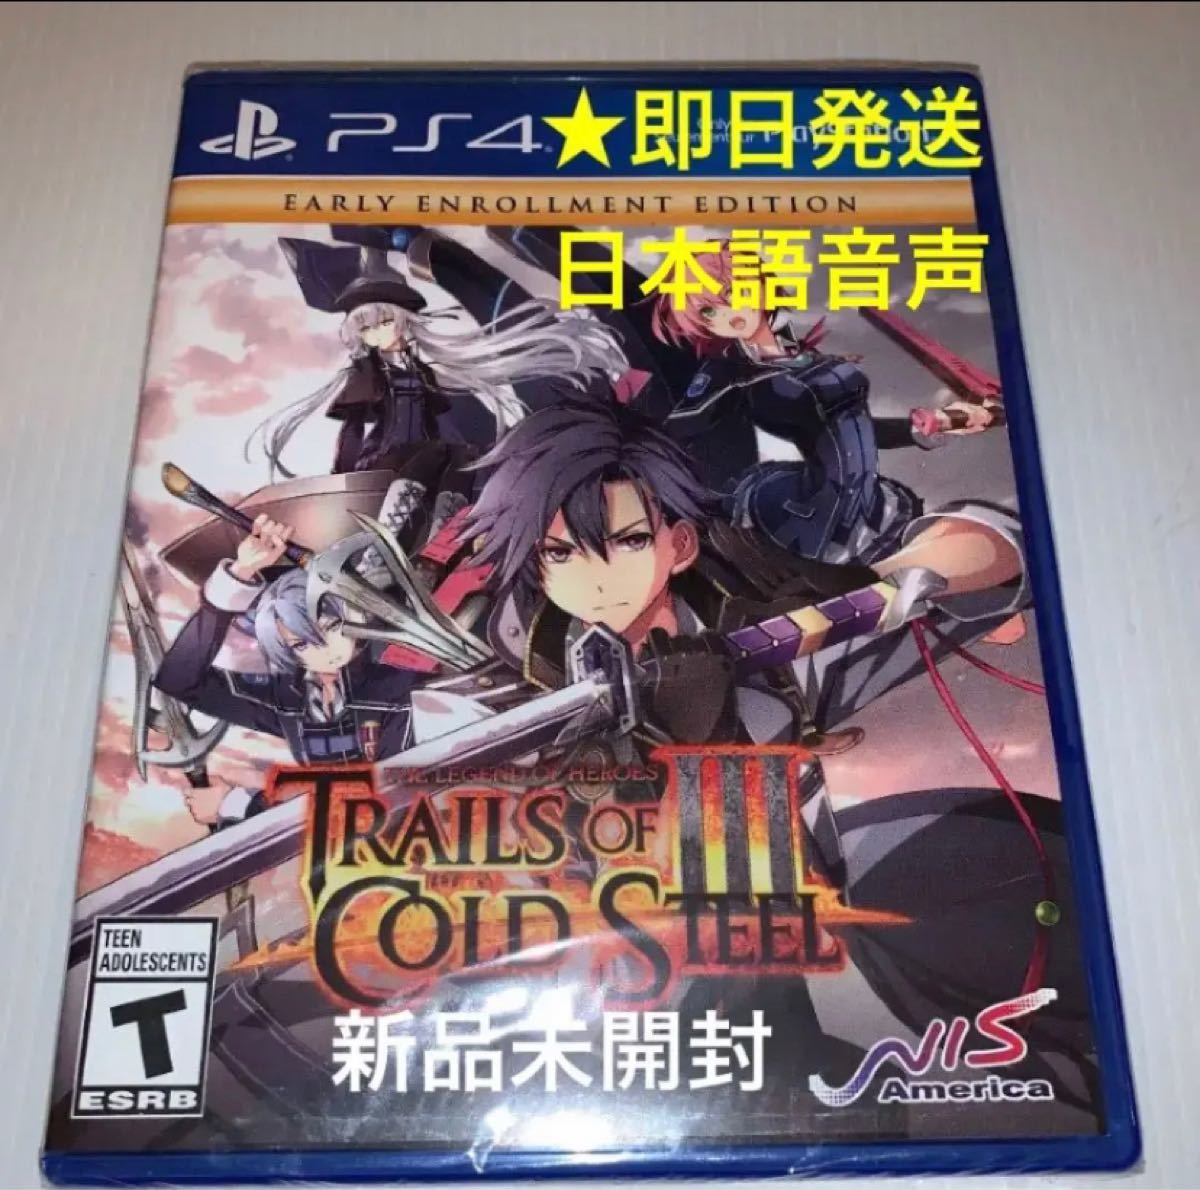 The Legend of Heroes III ps4 ソフト ★北米版★新品